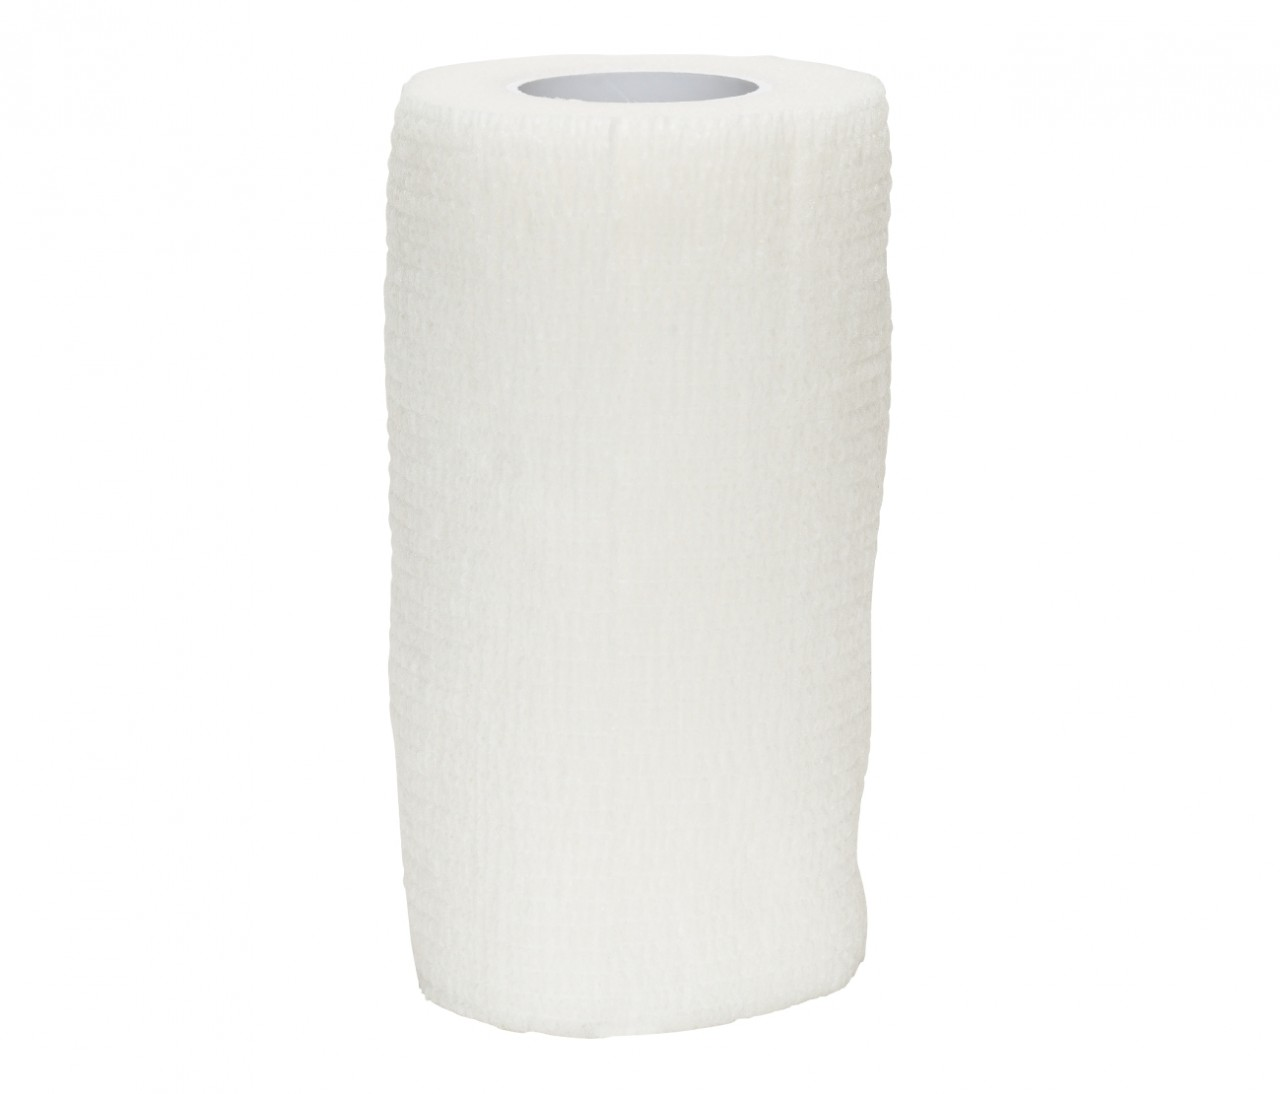 Equilastic selbsthaftende Bandagen 10CM Weiss